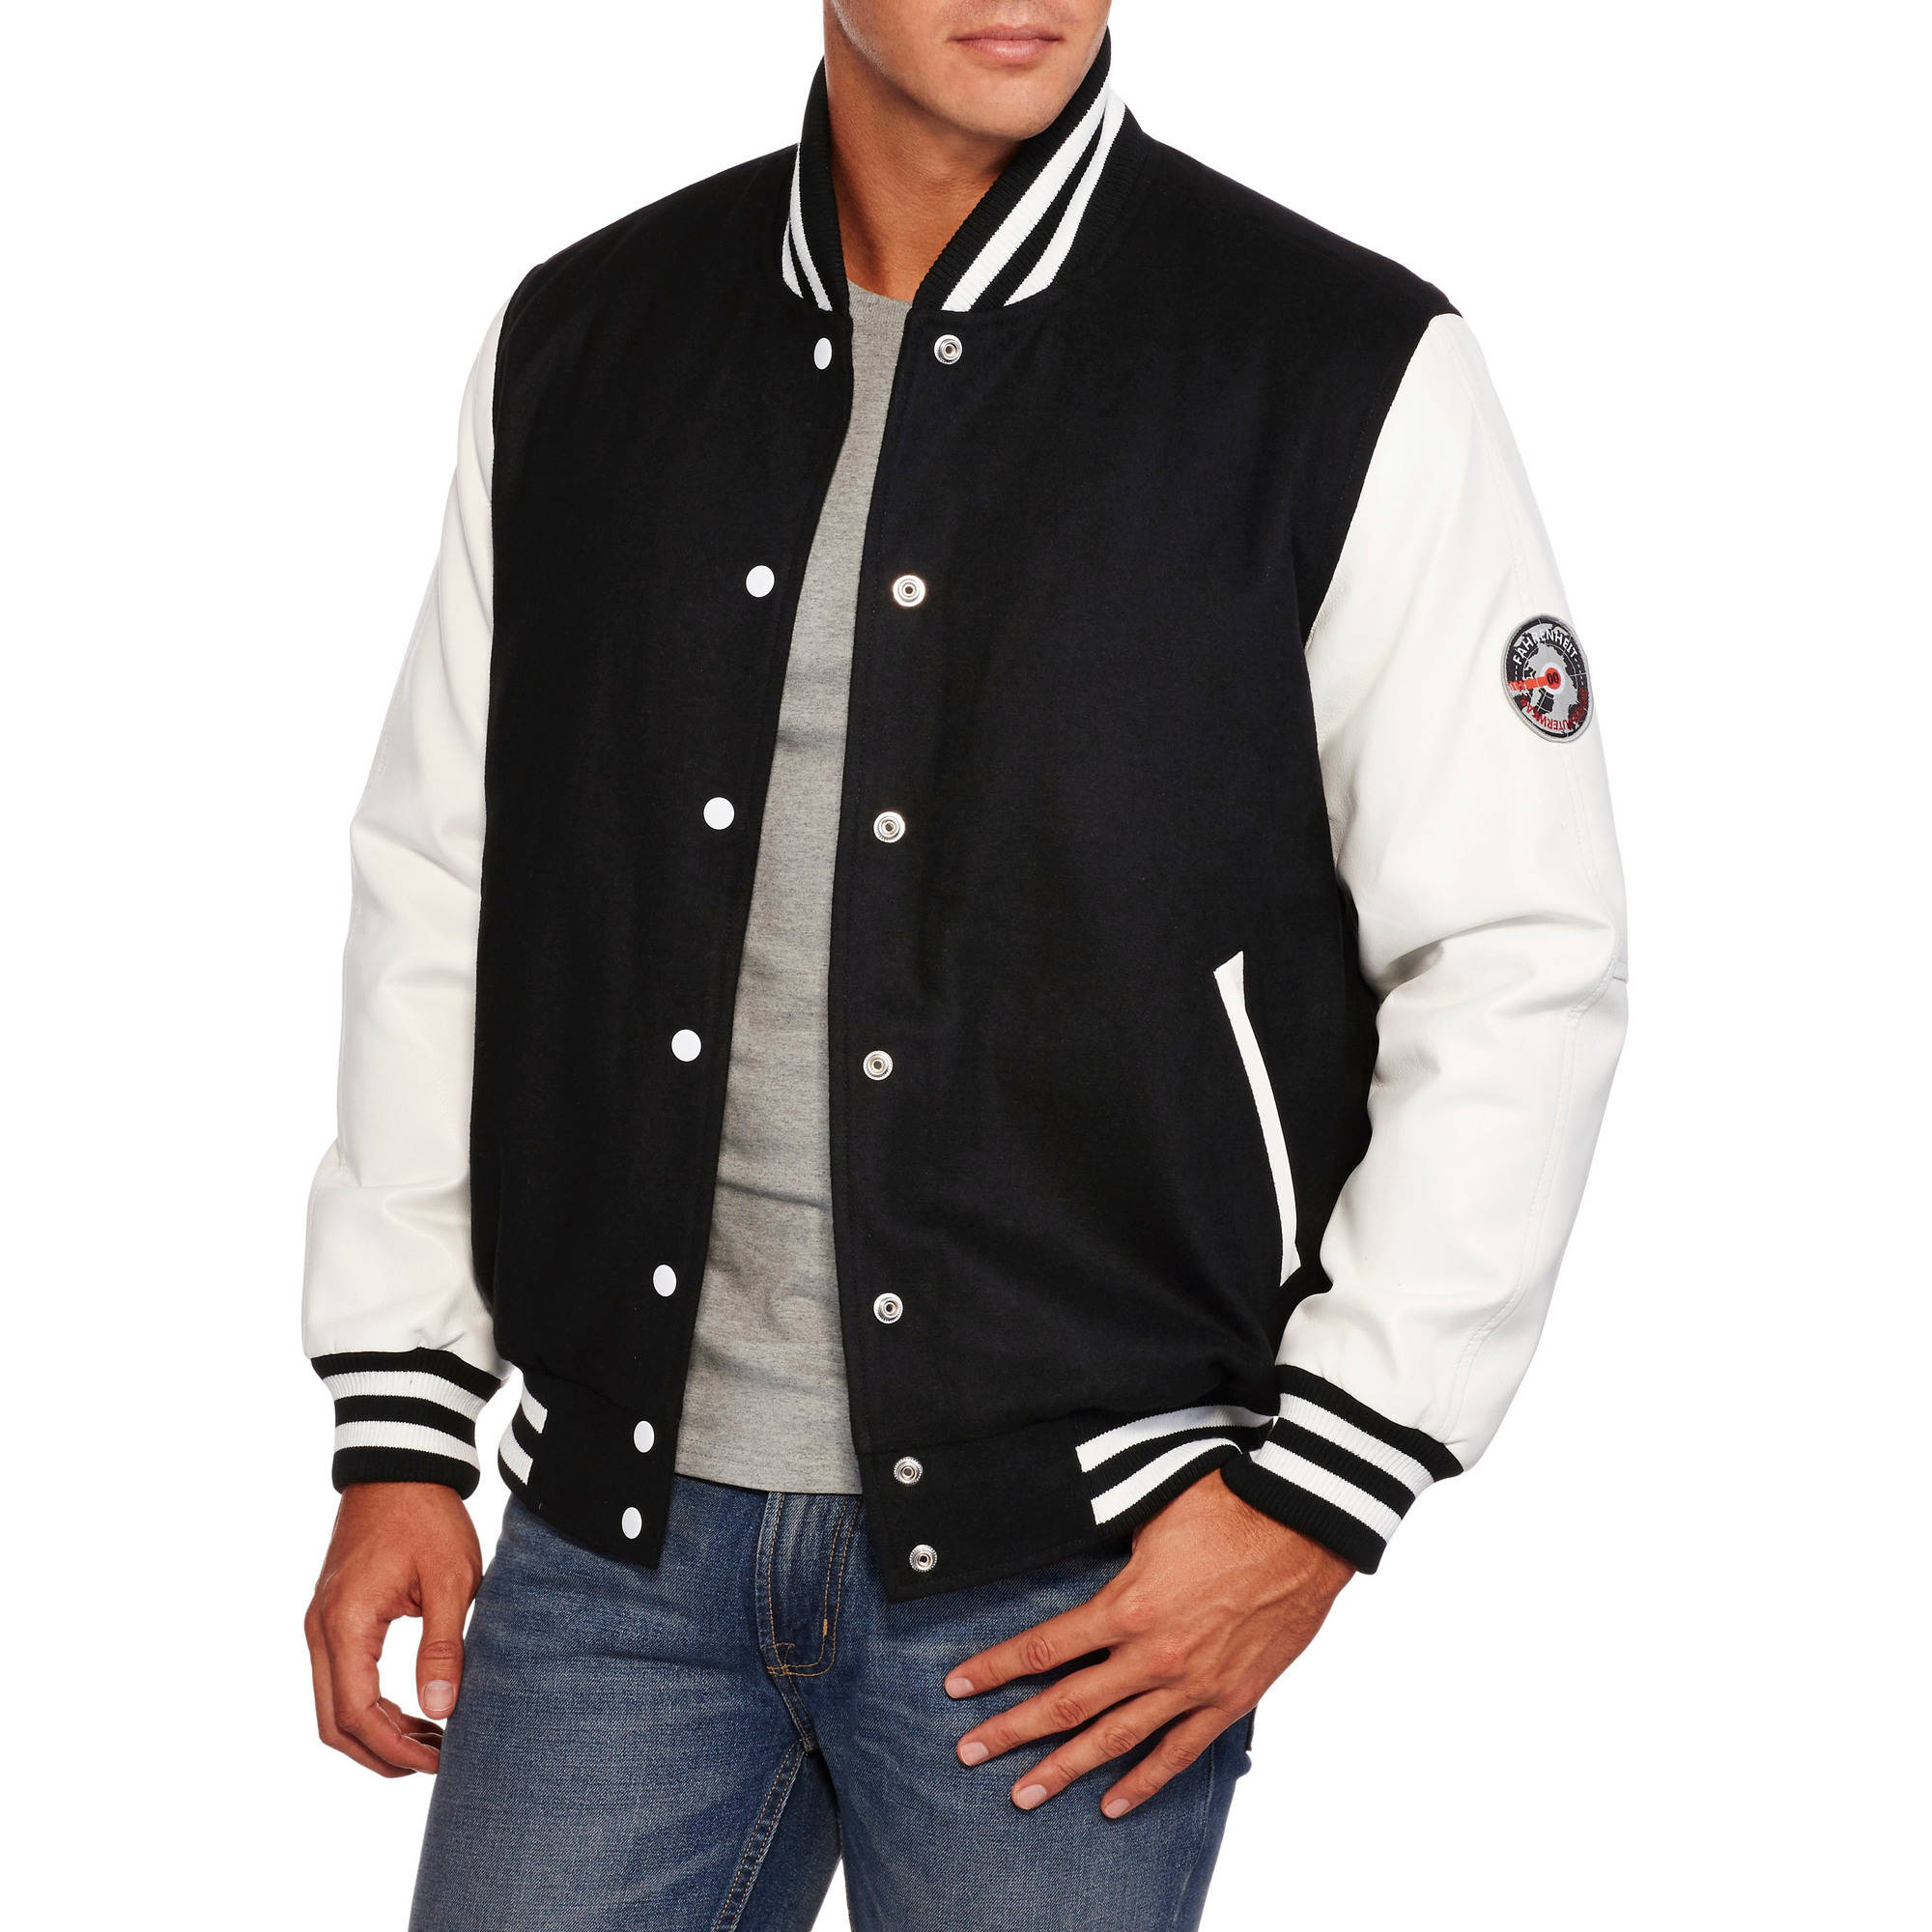 Men's Wool Blend Bomber Jacket with PU Sleeves